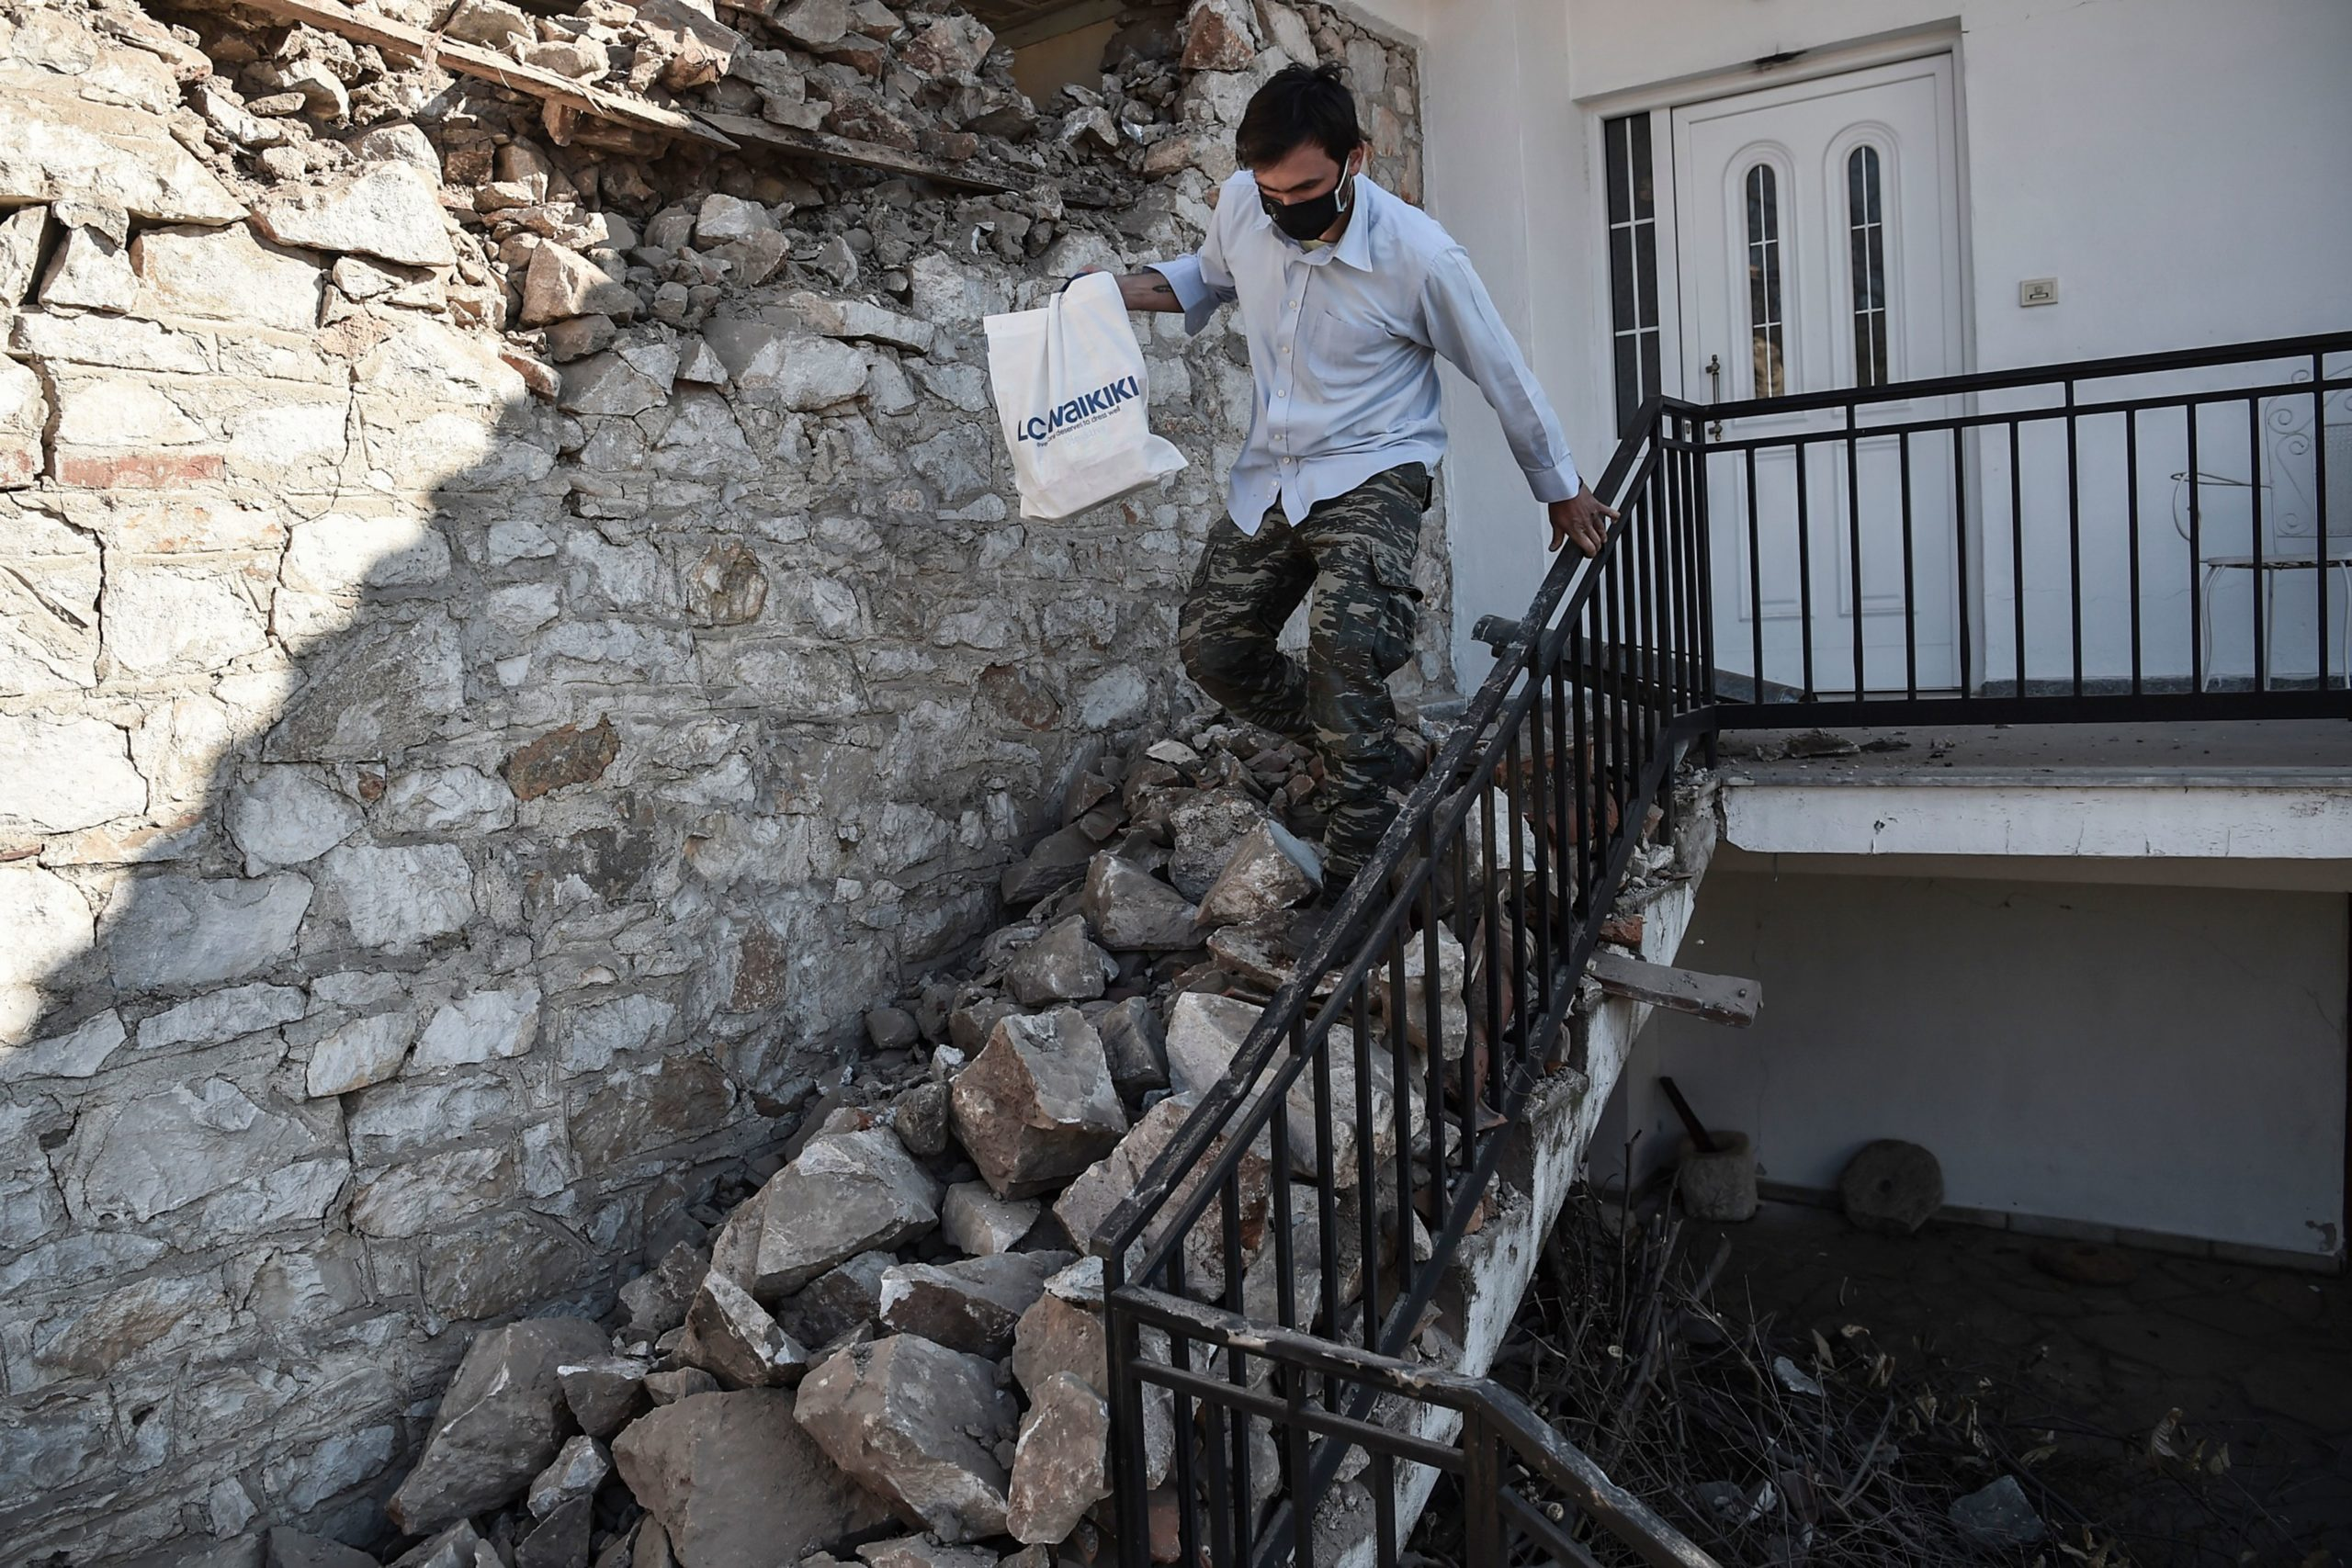 A man carries his belongings from a damaged house in the village of Damasi, near the town of Tyrnavos, after a strong 6,3-magnitude earthquake hit the Greek central region of Thessaly. - A strong 6.3-magnitude earthquake hit central Greece on March 3, damaging several buildings, including schools, and prompting residents near the epicentre to rush into the streets. According to the Athens observatory, the epicentre of the quake was 21 kilometres (13 miles) south of the town of Elassona, near Larissa and was eight kilometres deep. (Photo by Sakis MITROLIDIS / AFP) (Photo by SAKIS MITROLIDIS/AFP via Getty Images)